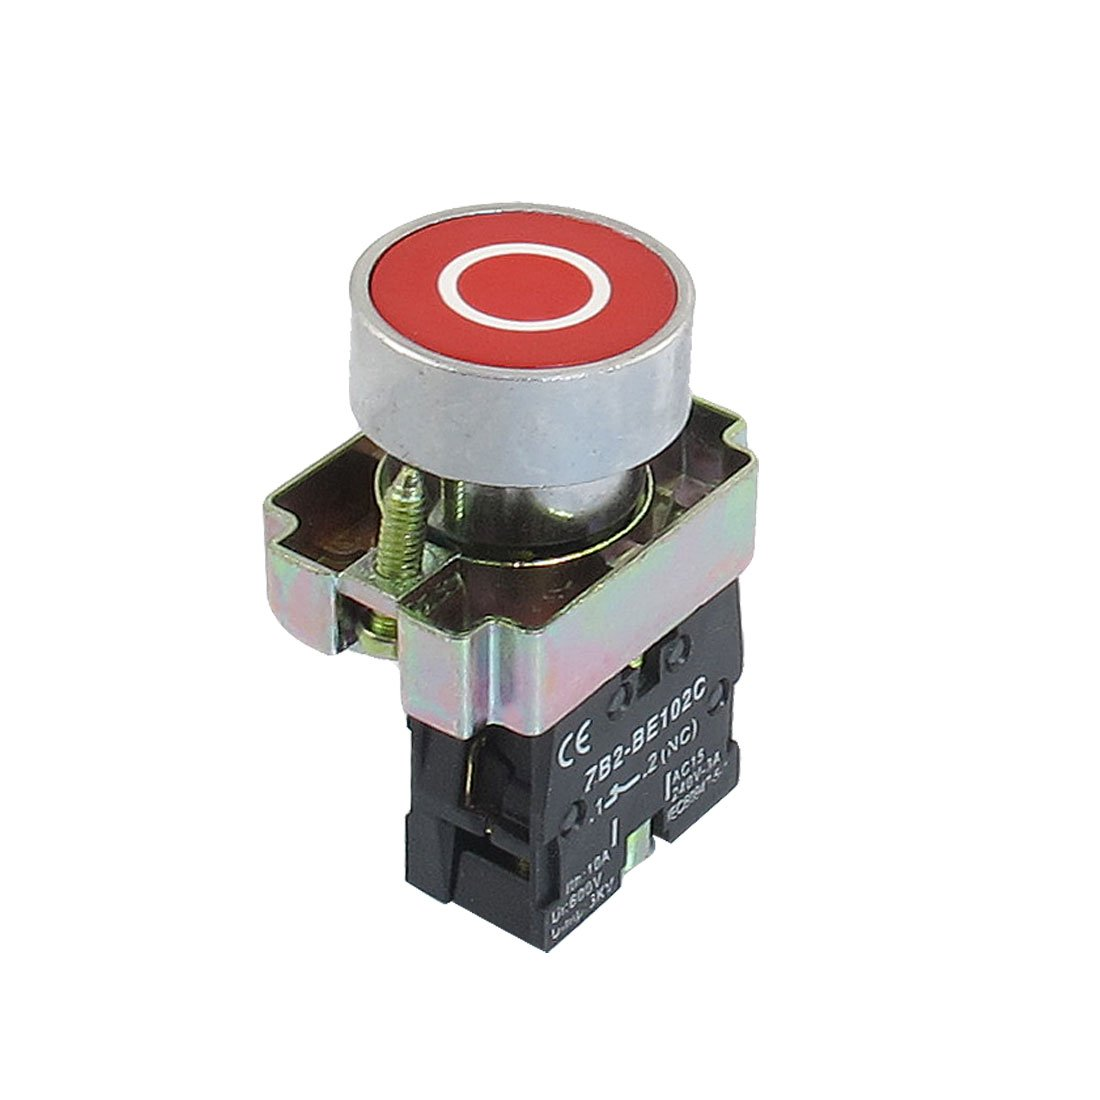 Uxcell a12082000ux0349 22mm NC N/C Red Sign Momentary Push Button Switch 600V 10A ZB2-BA4322